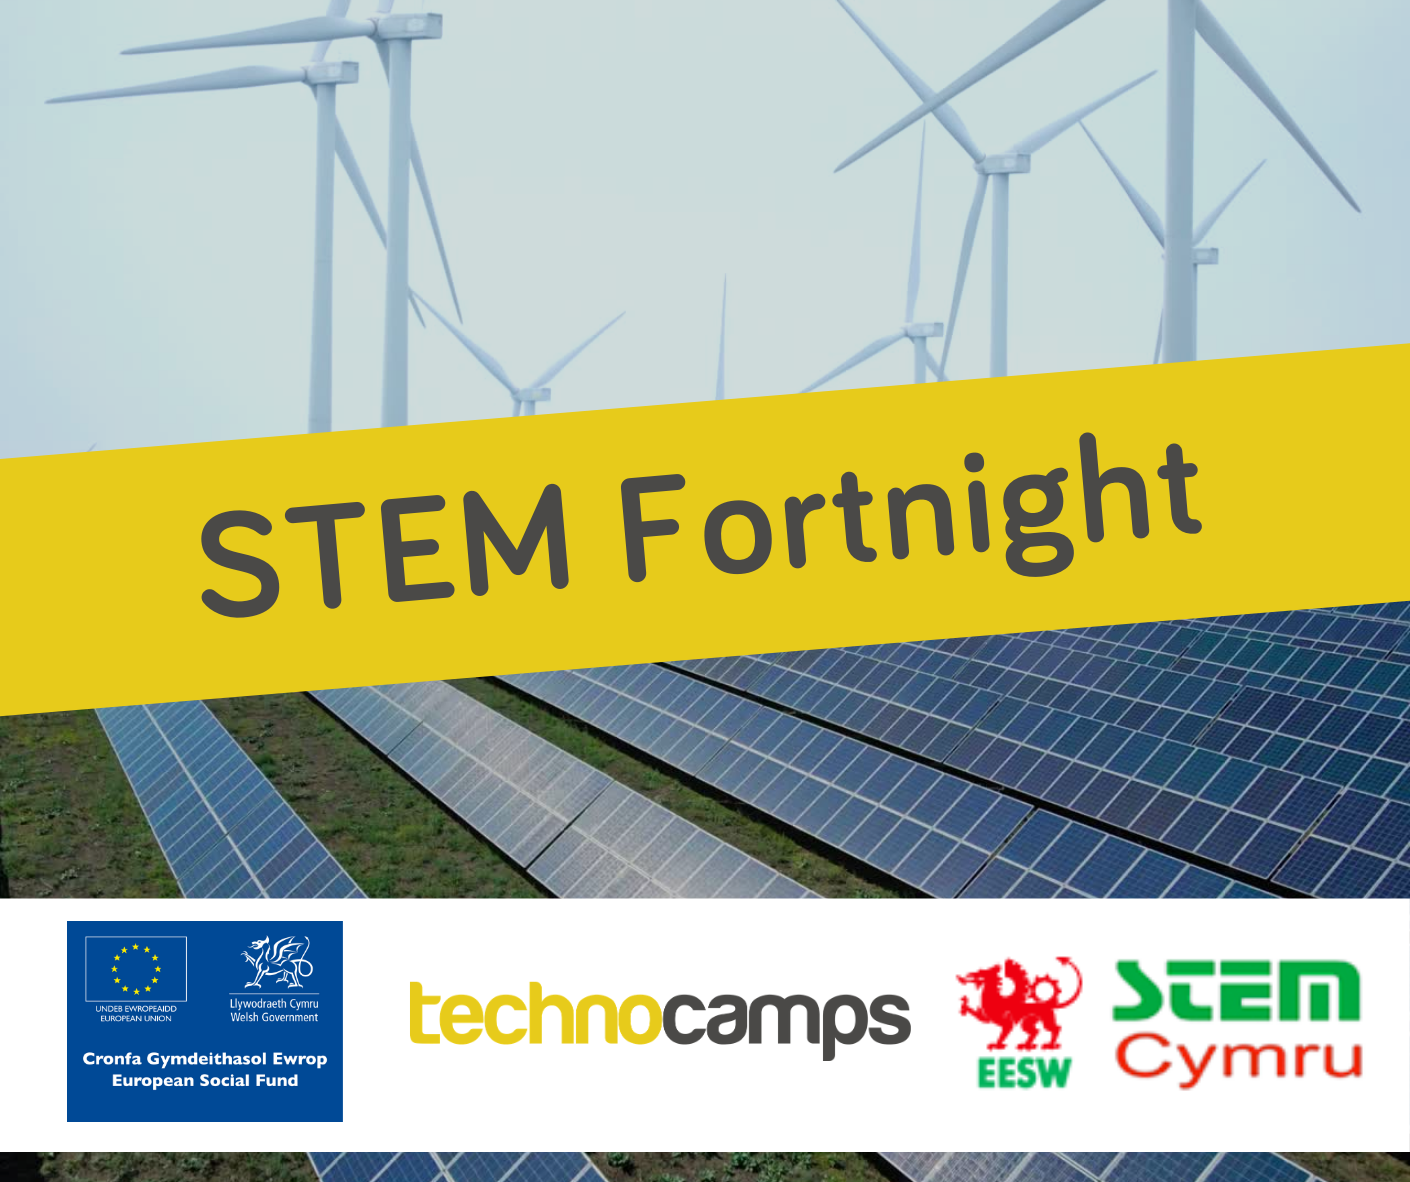 STEM Fortnight